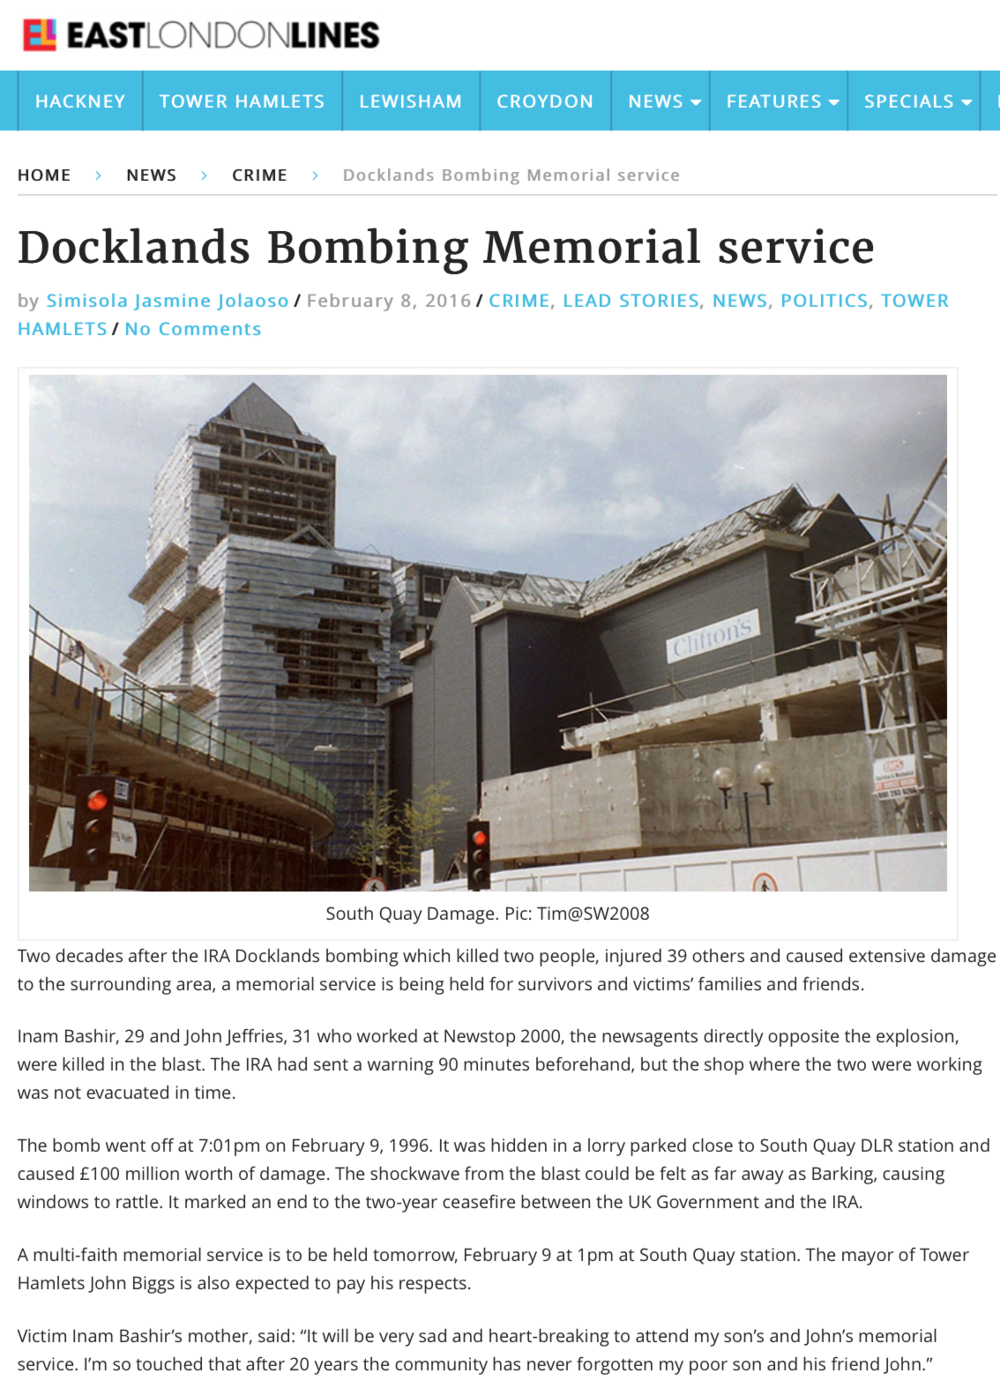 Docklands Bombing Memorial ELL Article pg1.png